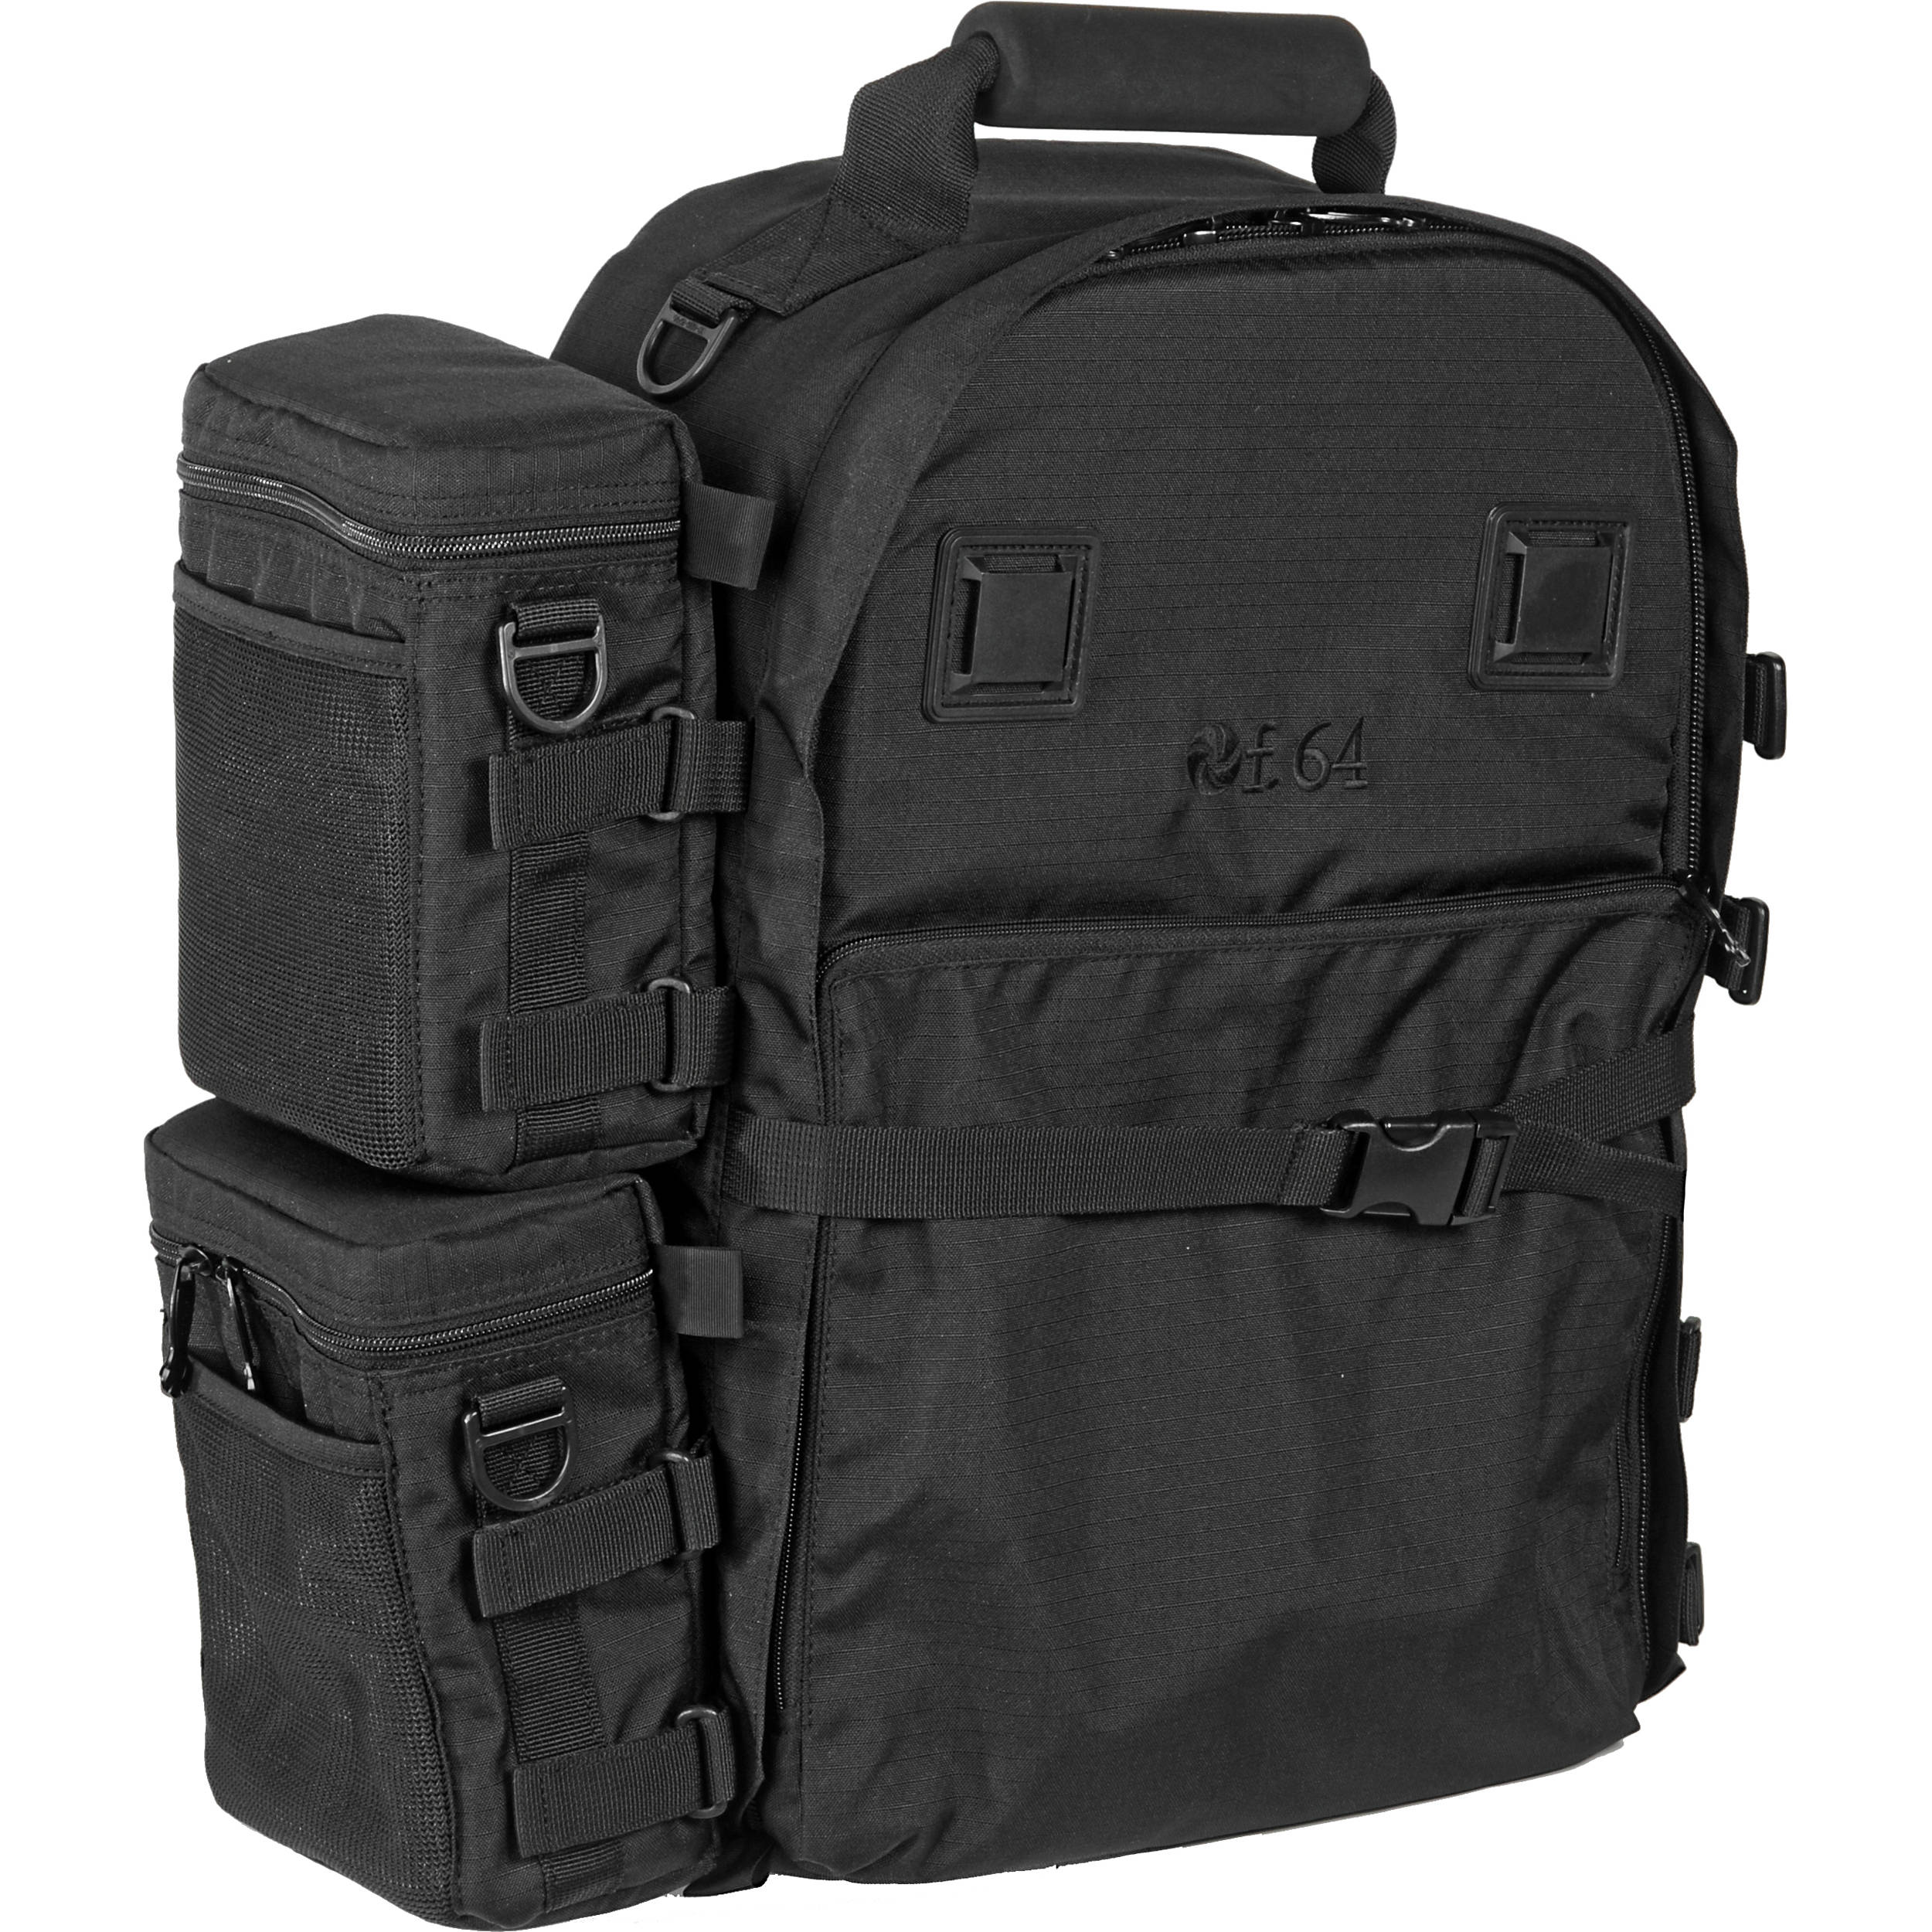 f.64 BP Large Backpack (Black) BPB B&H Photo Video